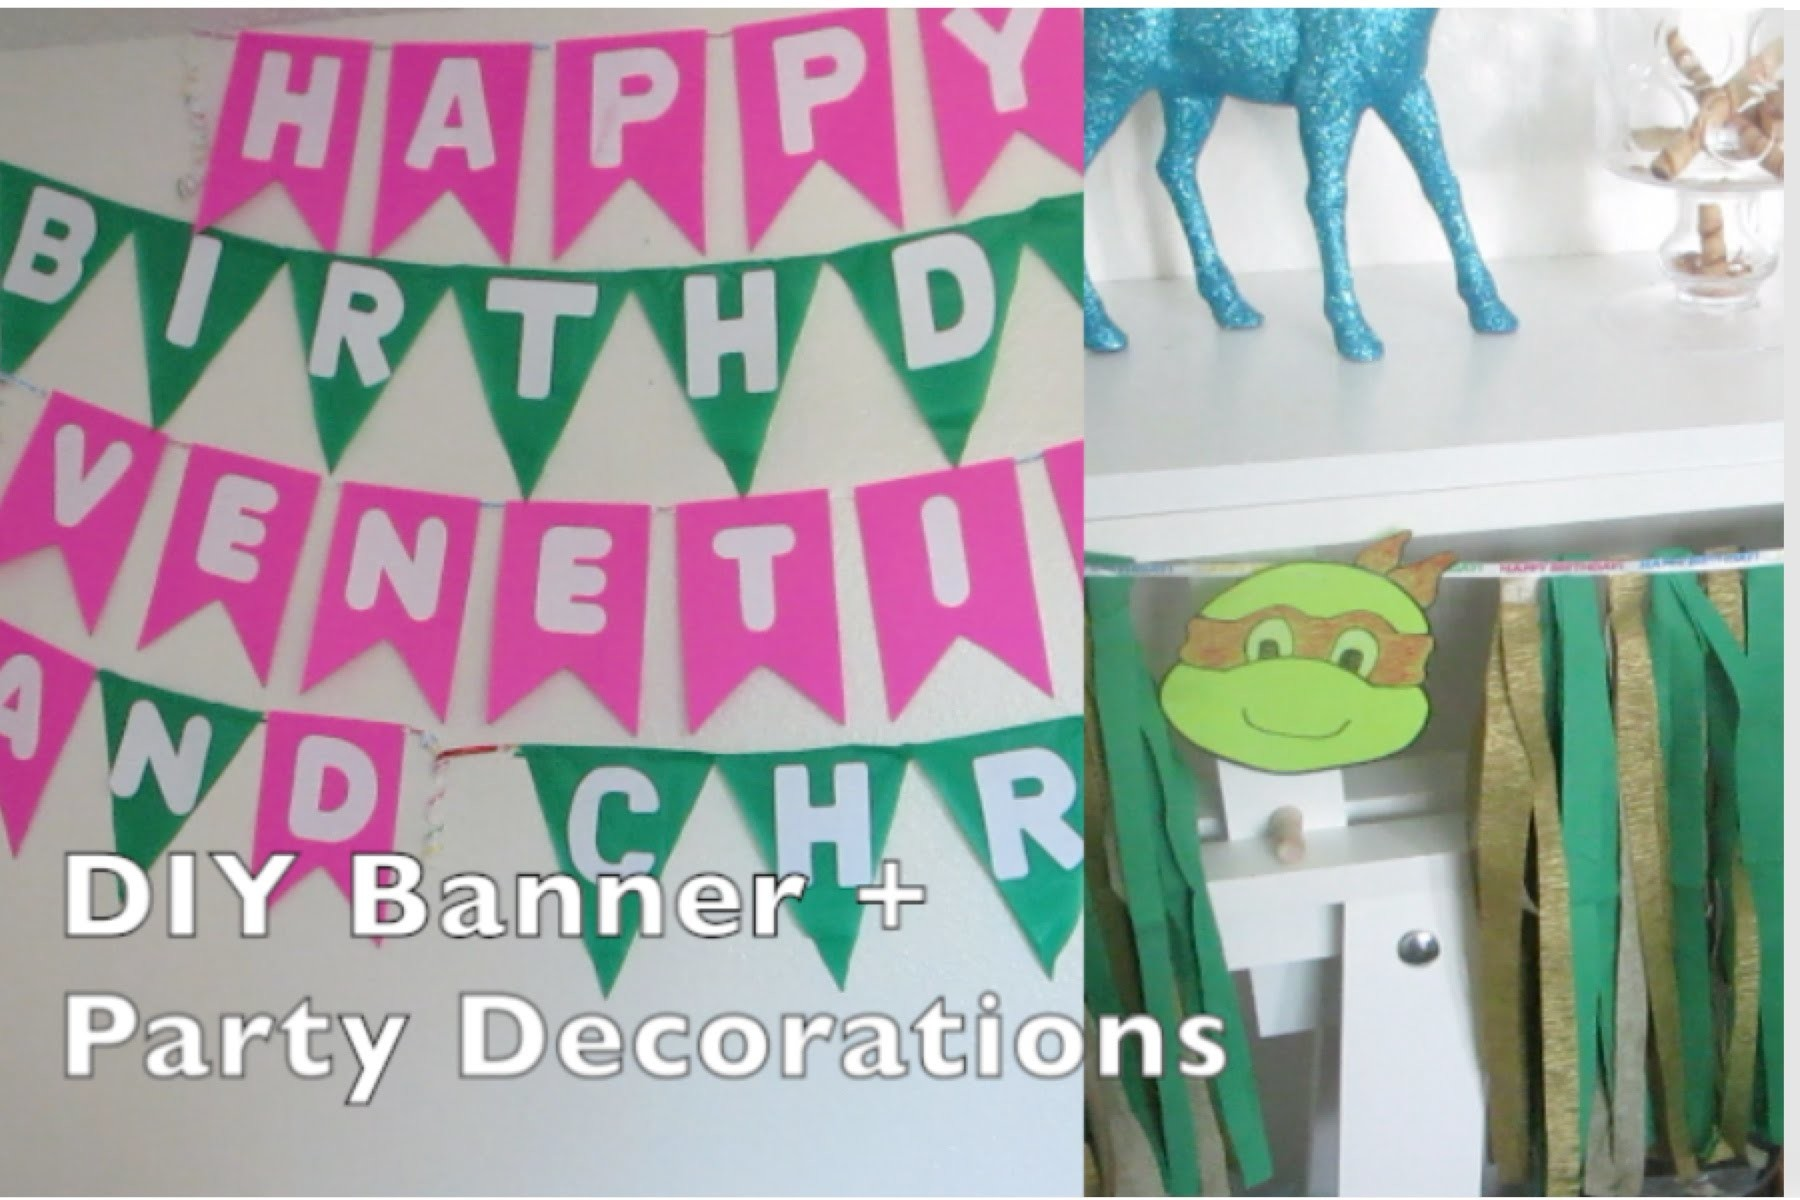 (DIY) Banner + Party Decorations - AlyssaFaye